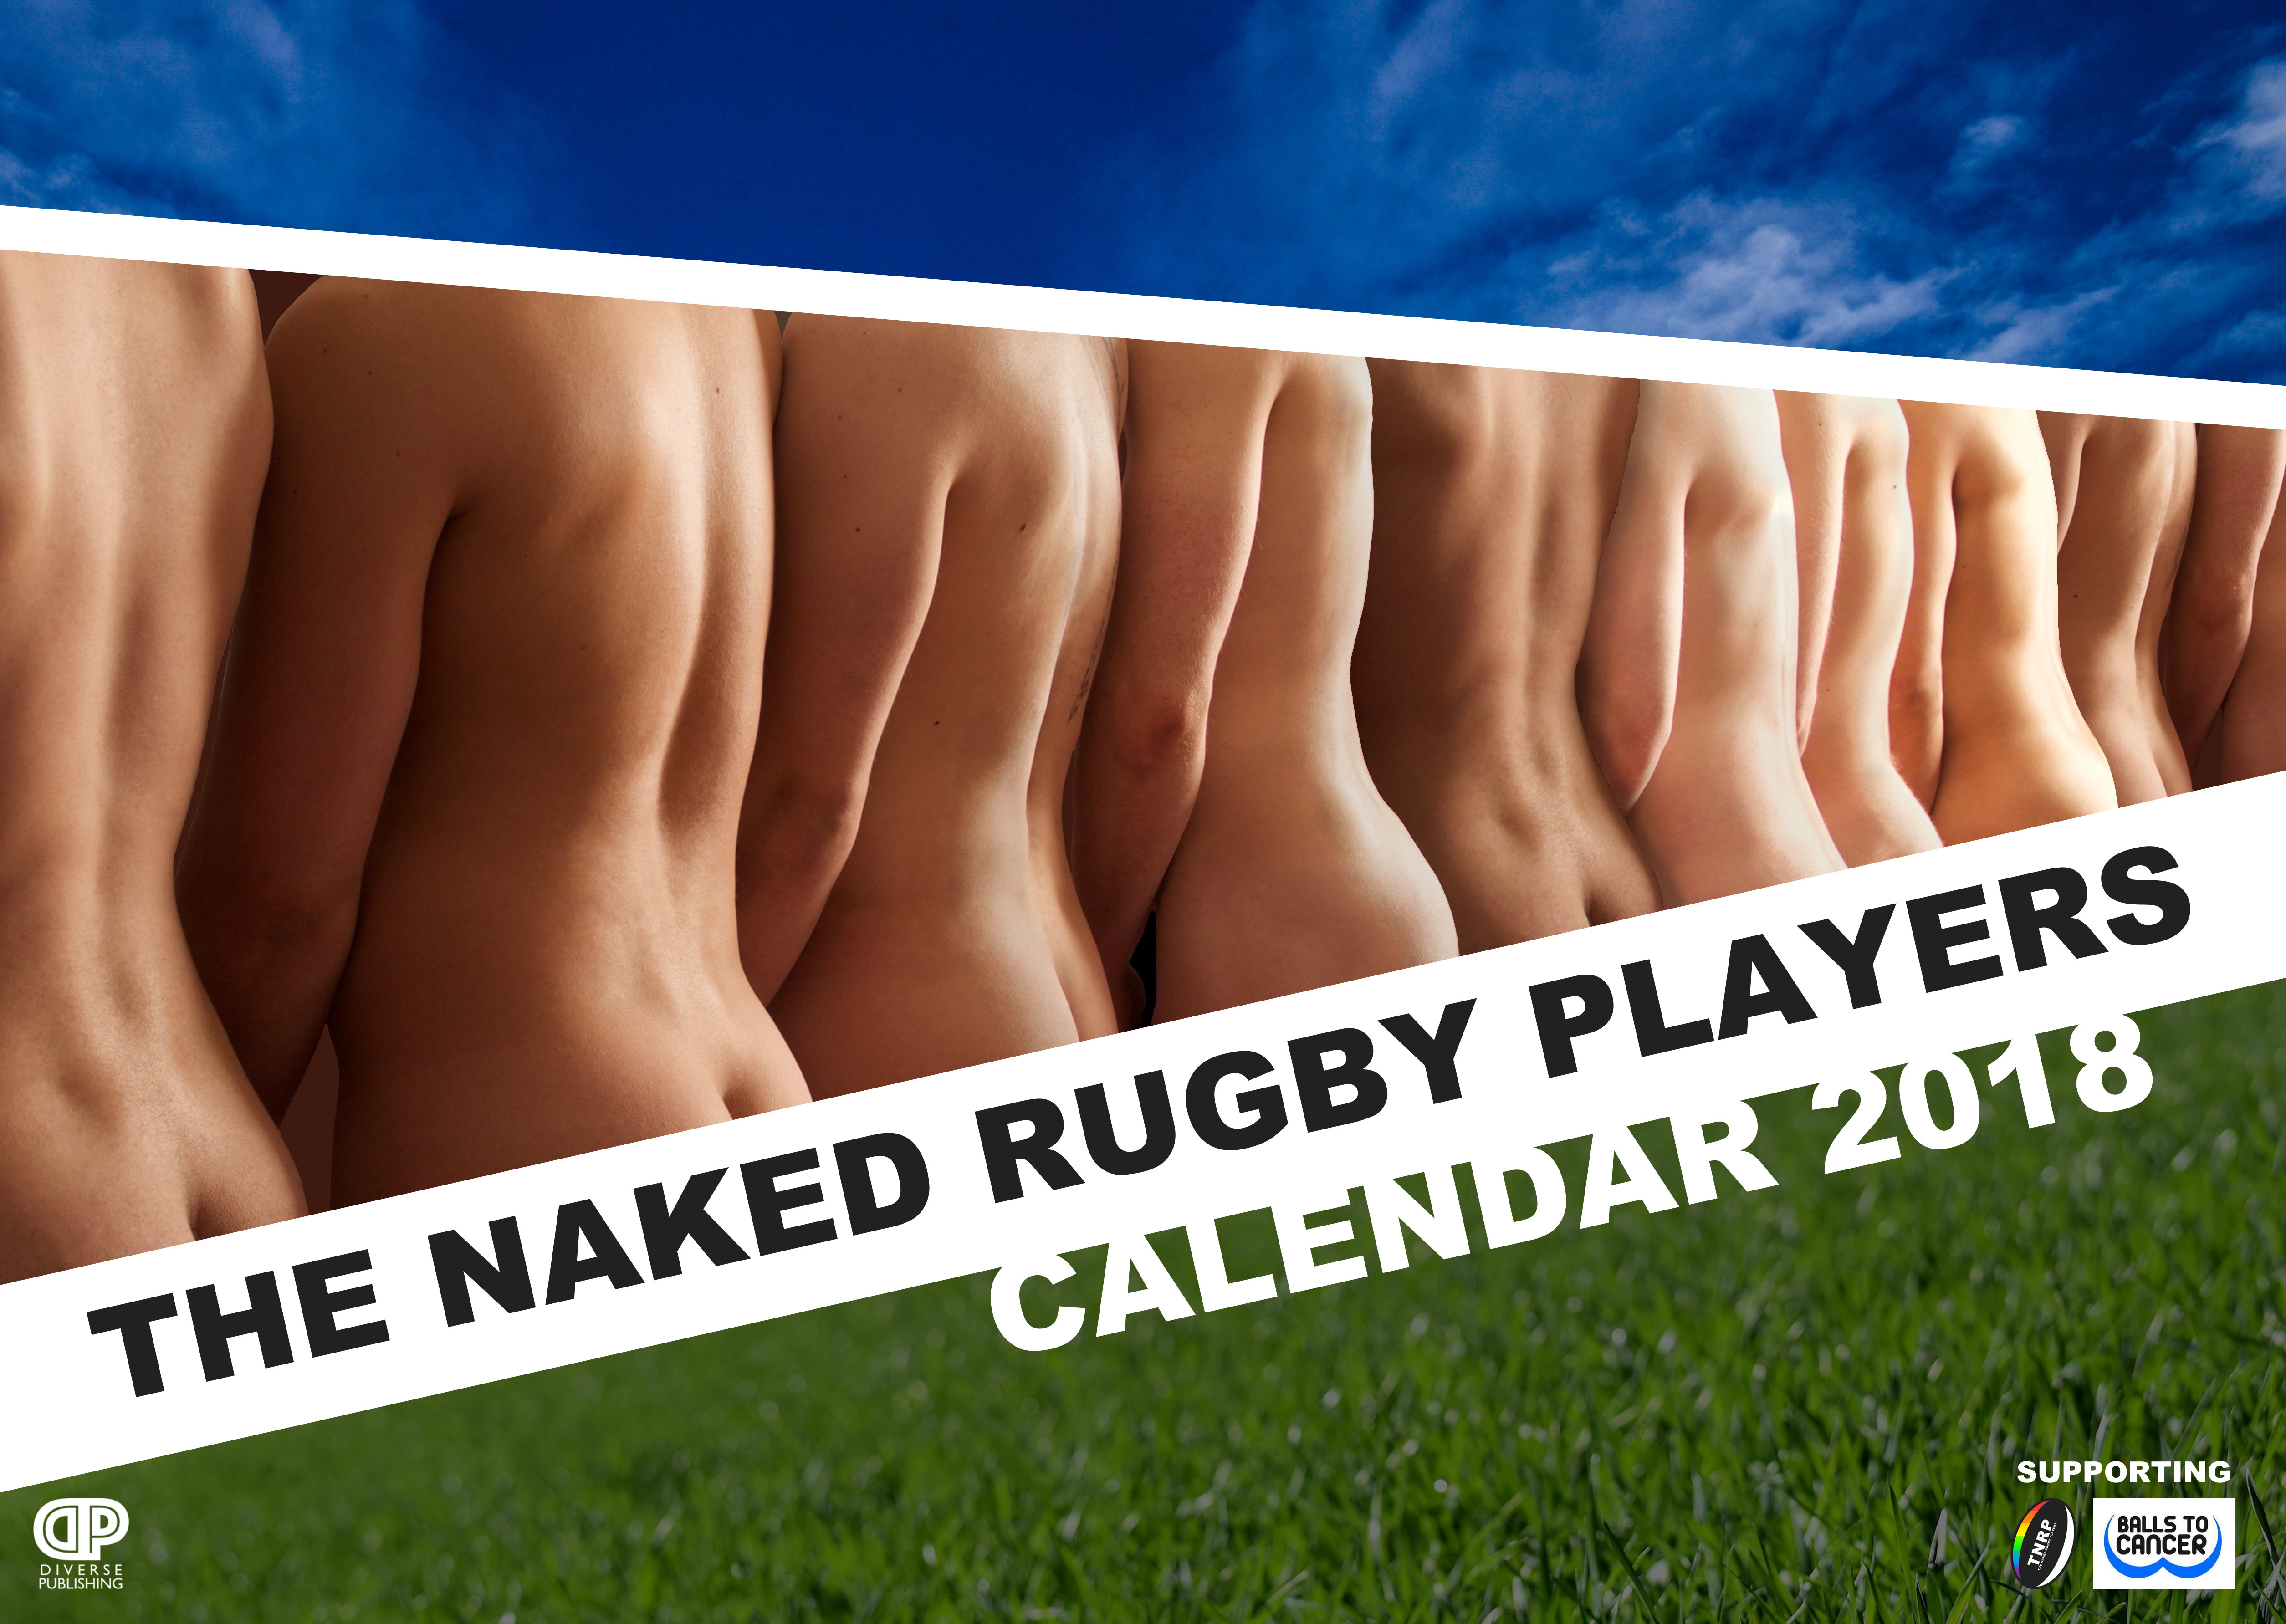 The Naked Rugby Players Calendar 2018 TNRPC18